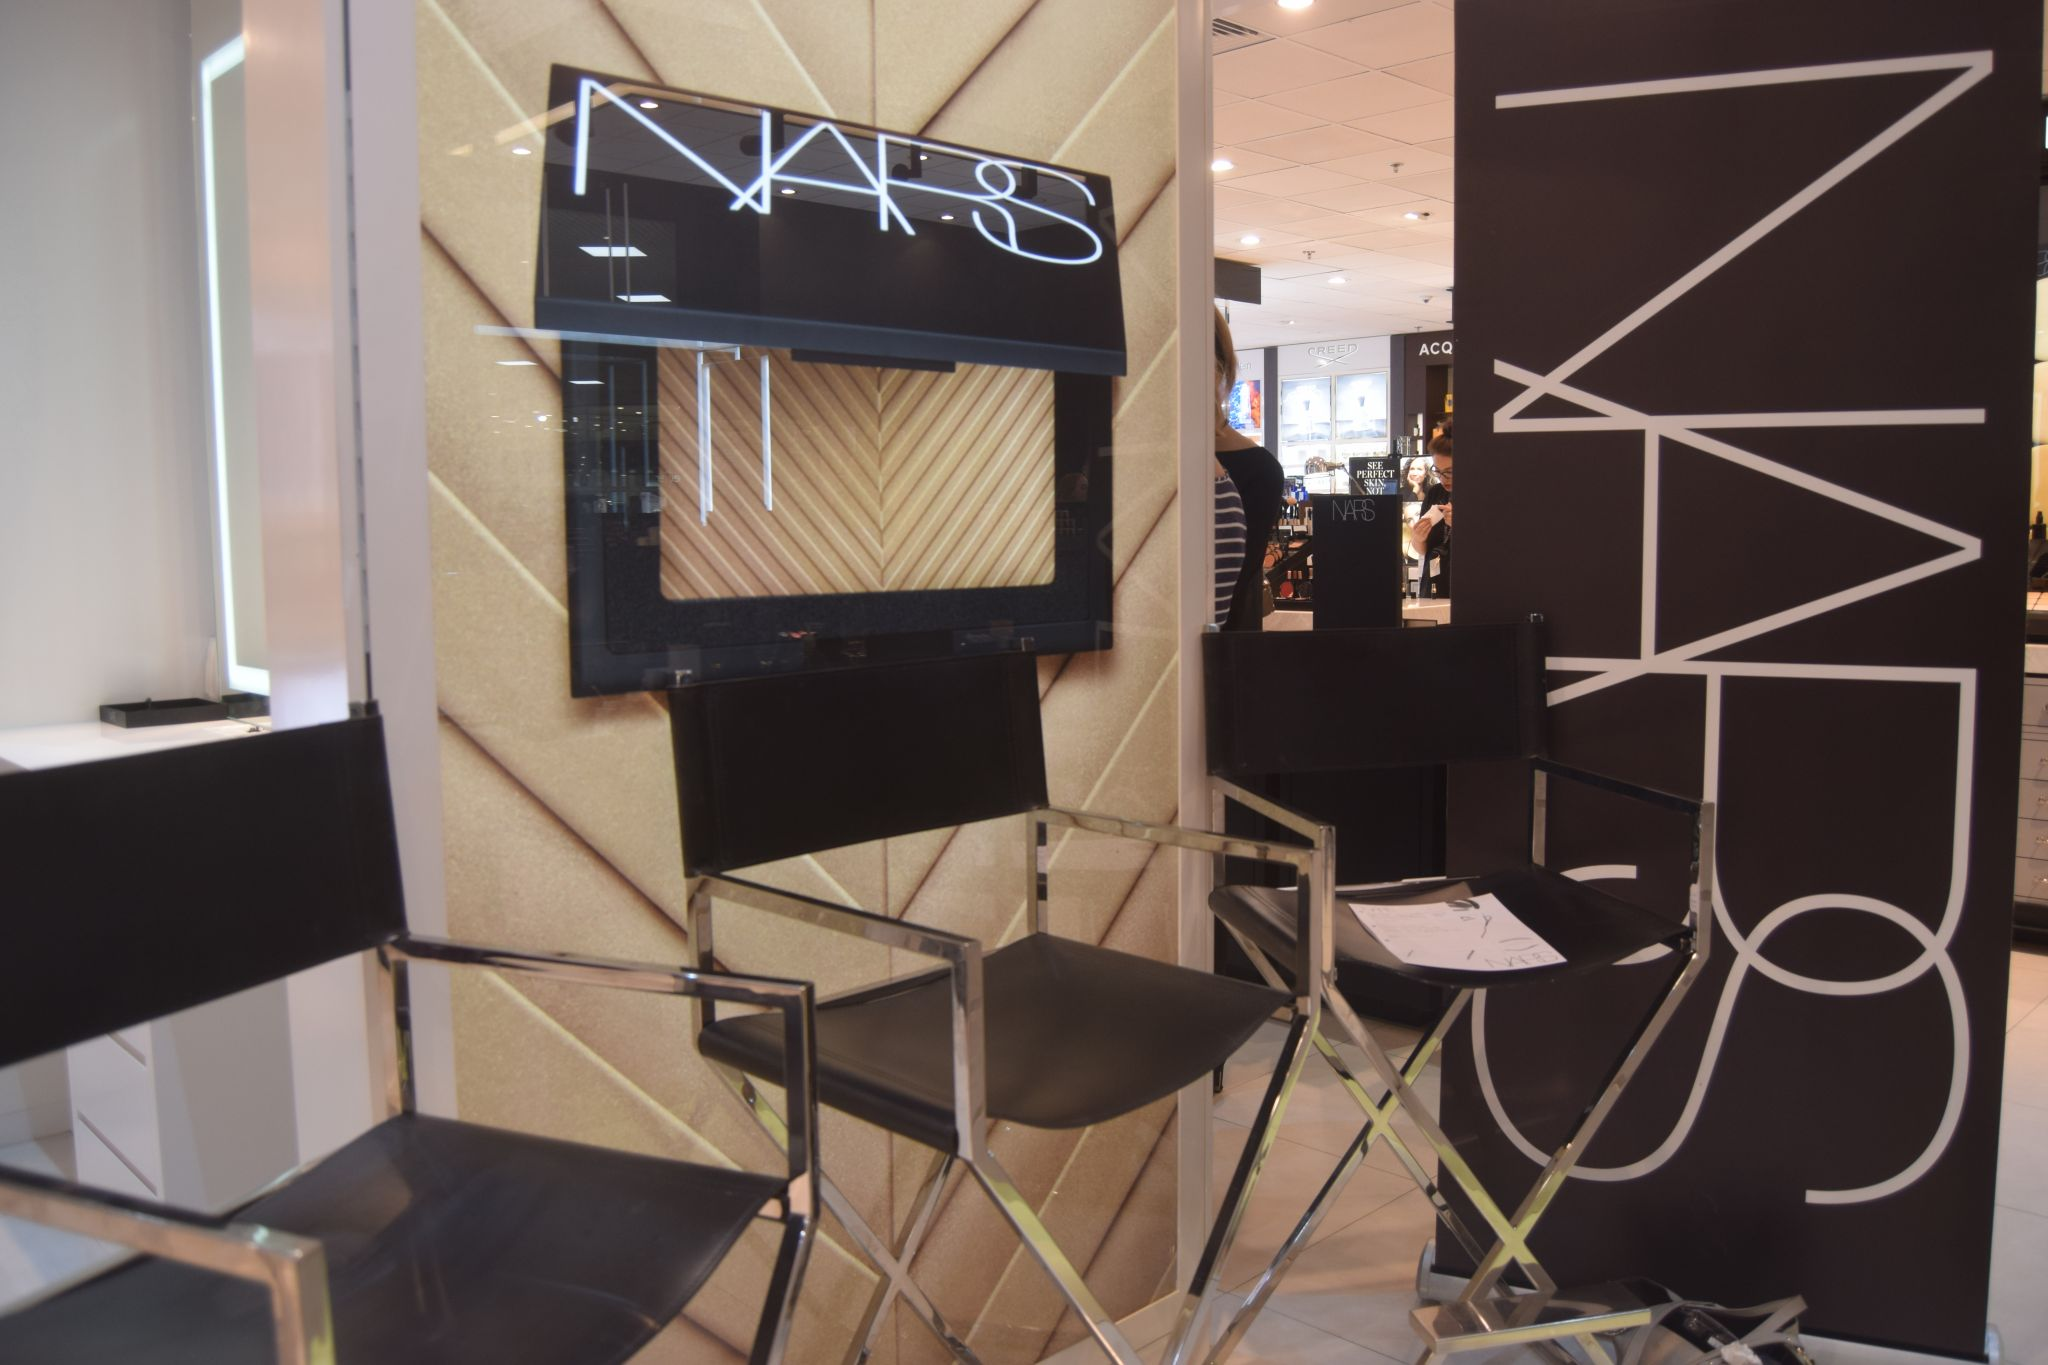 DSC 2433 1440x960 - Nars Exclusive Workshops: Sun Wash Diffusing Bronzer Collection